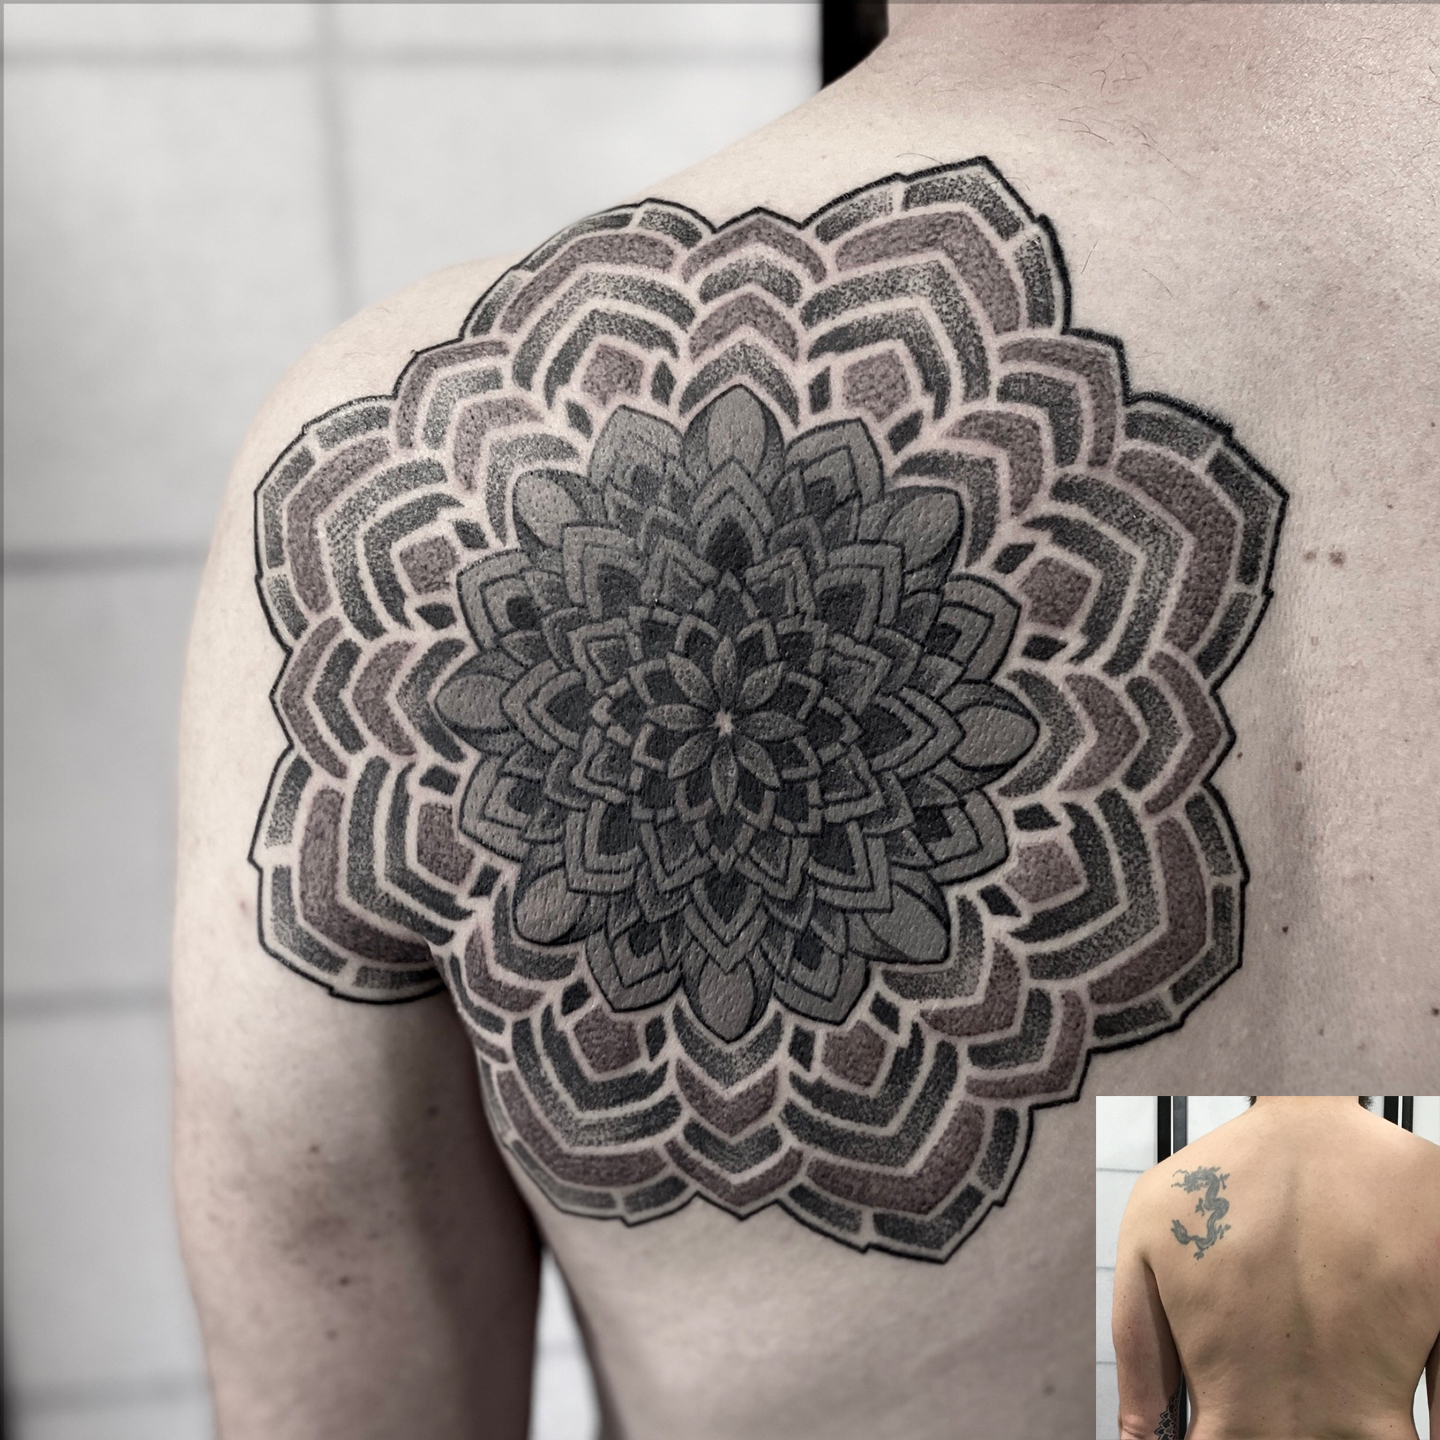 Tattoo Cover fait par Julien